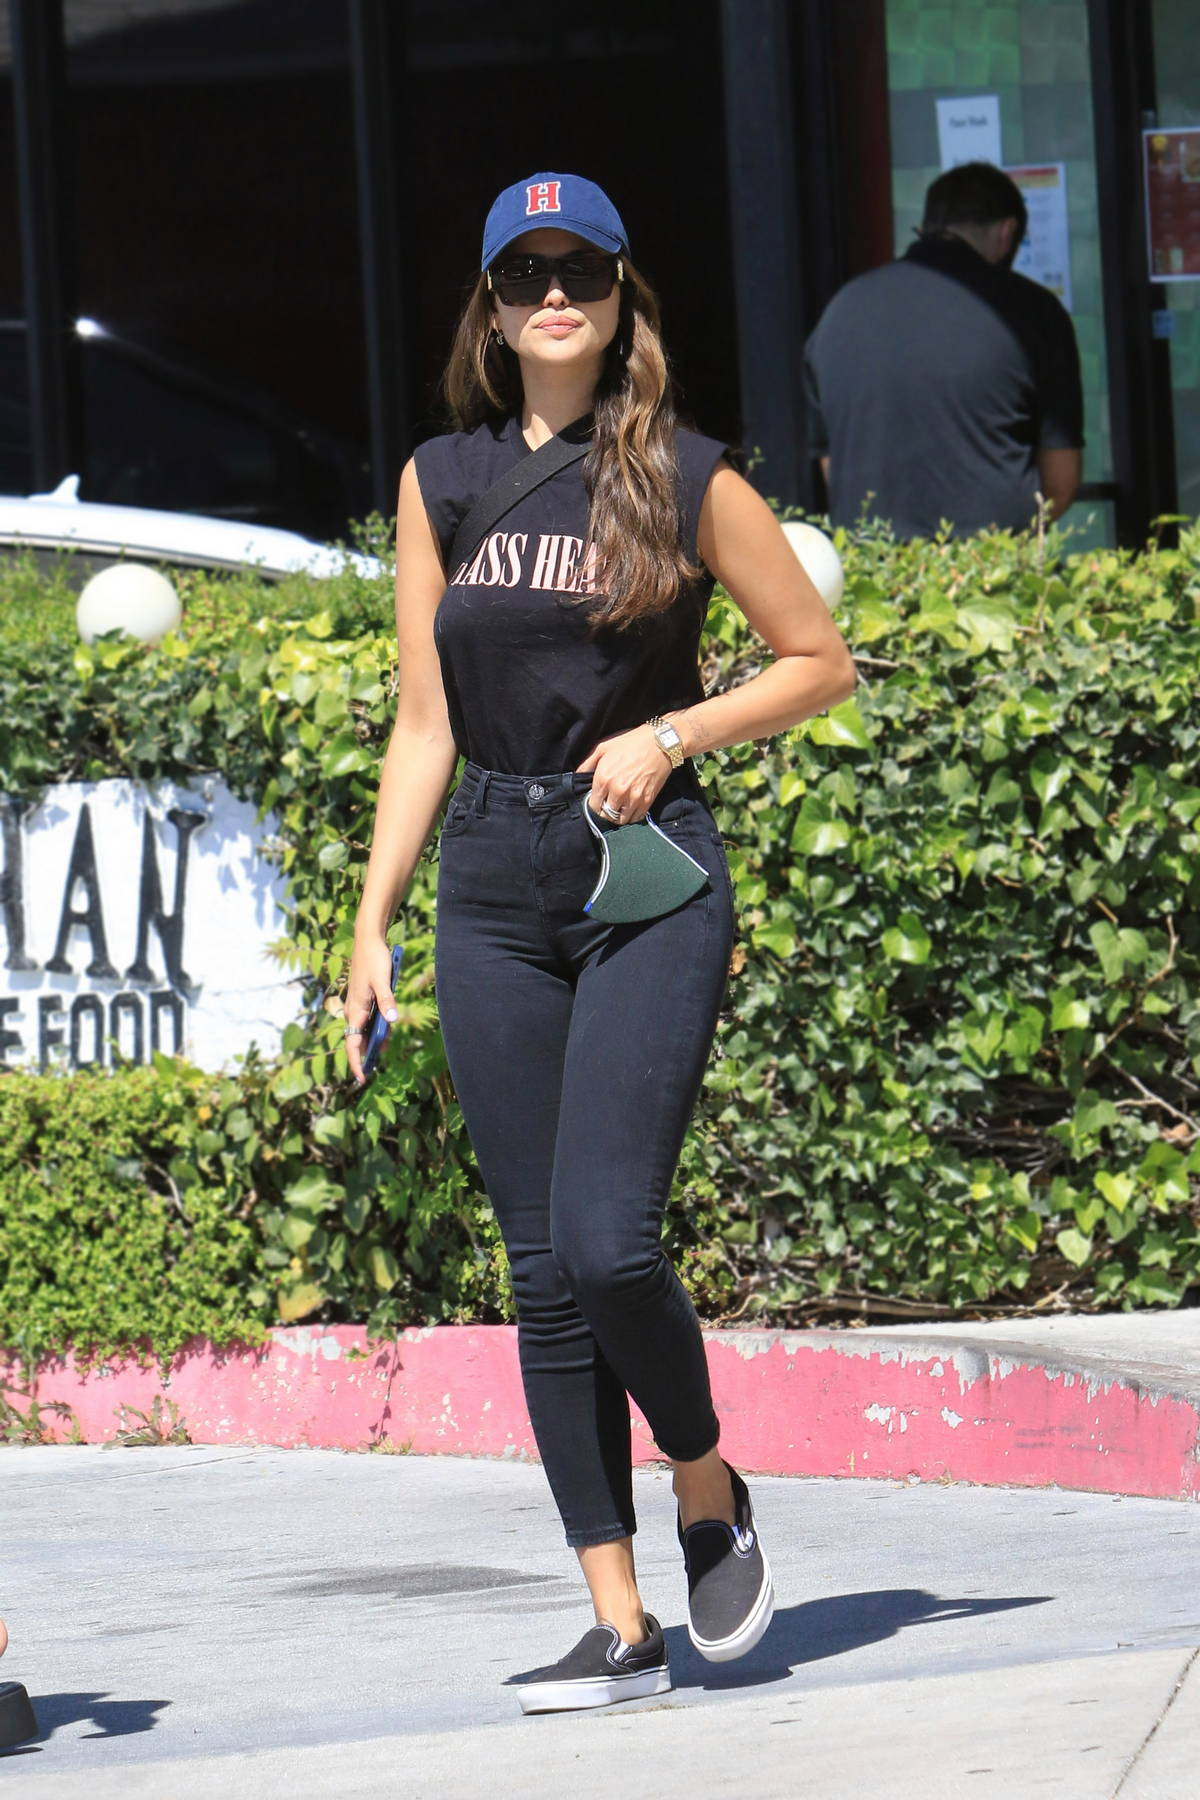 Eiza Gonzalez grabs lunch with friends before picking up her dogs at a daycare center in Los Angeles